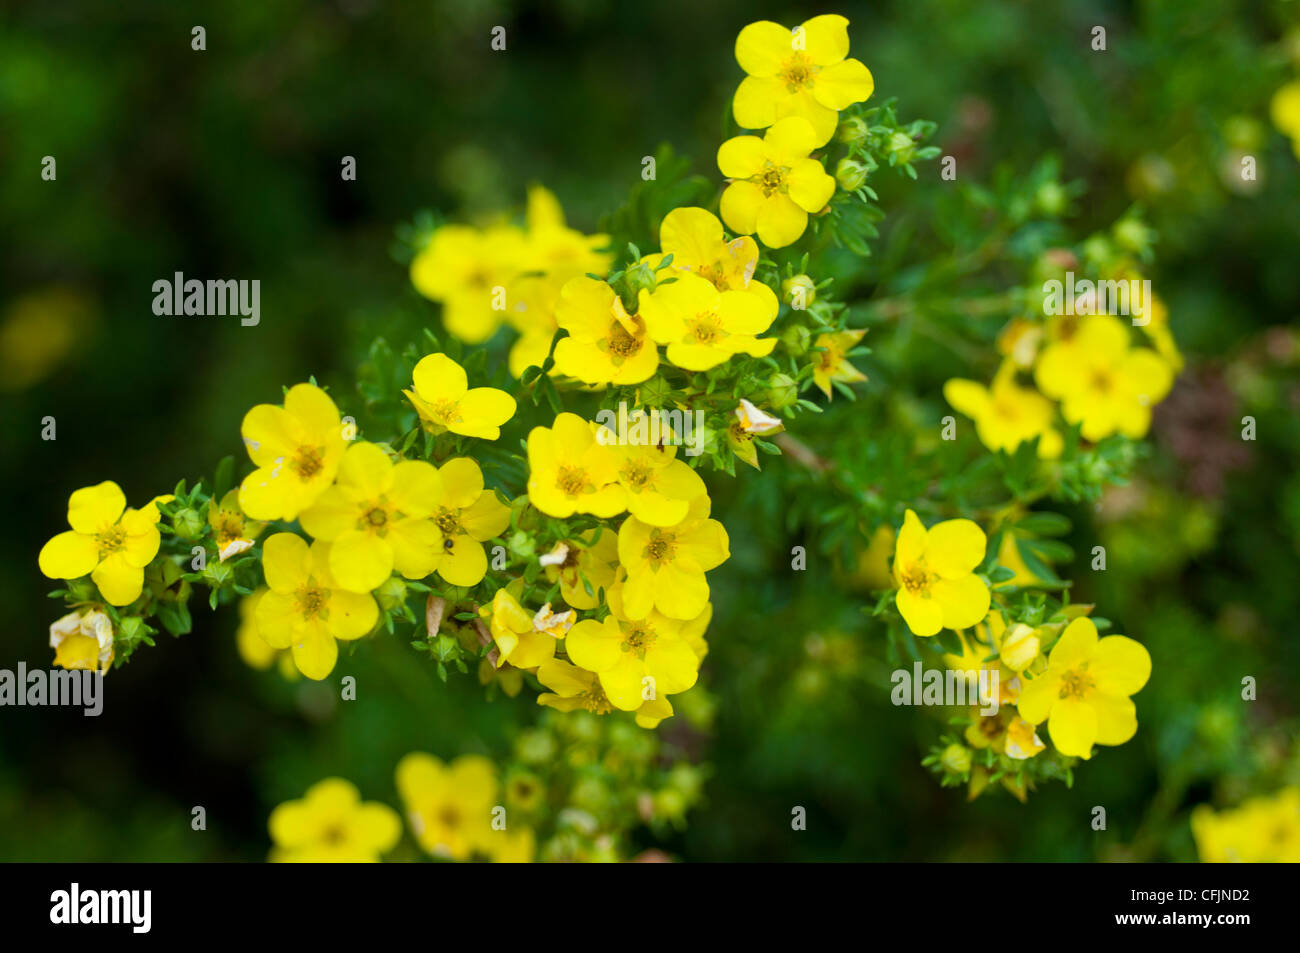 Small yellow flowers of shrubby cinquefoil stock photos small small yellow flowers of shrubby cinquefoil potentila fruticosa v yellow gem rosaceae stock mightylinksfo